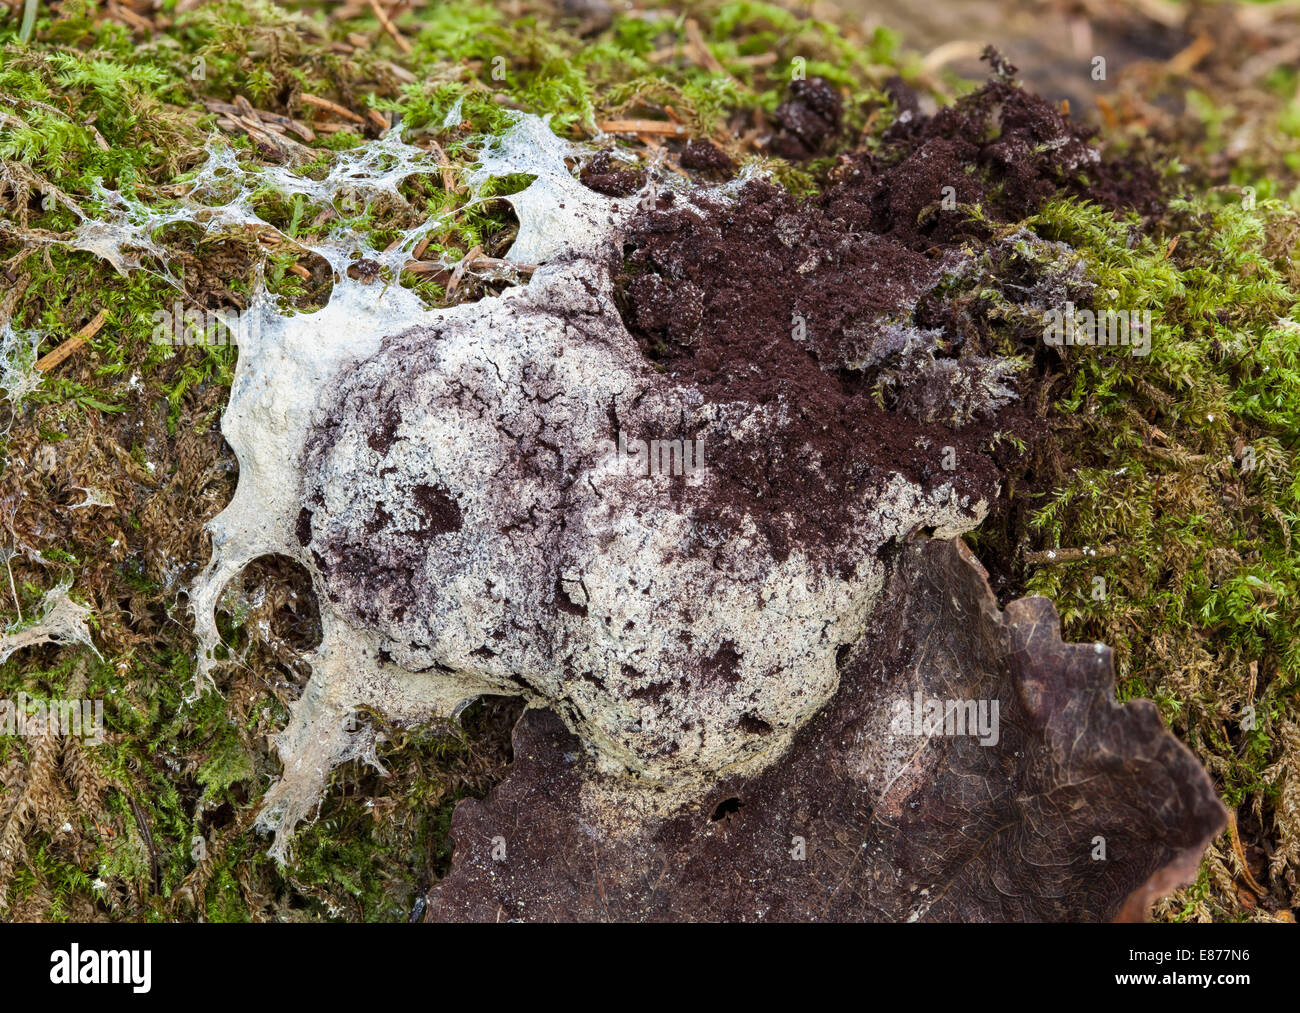 Dog vomit slime mold - Stock Image